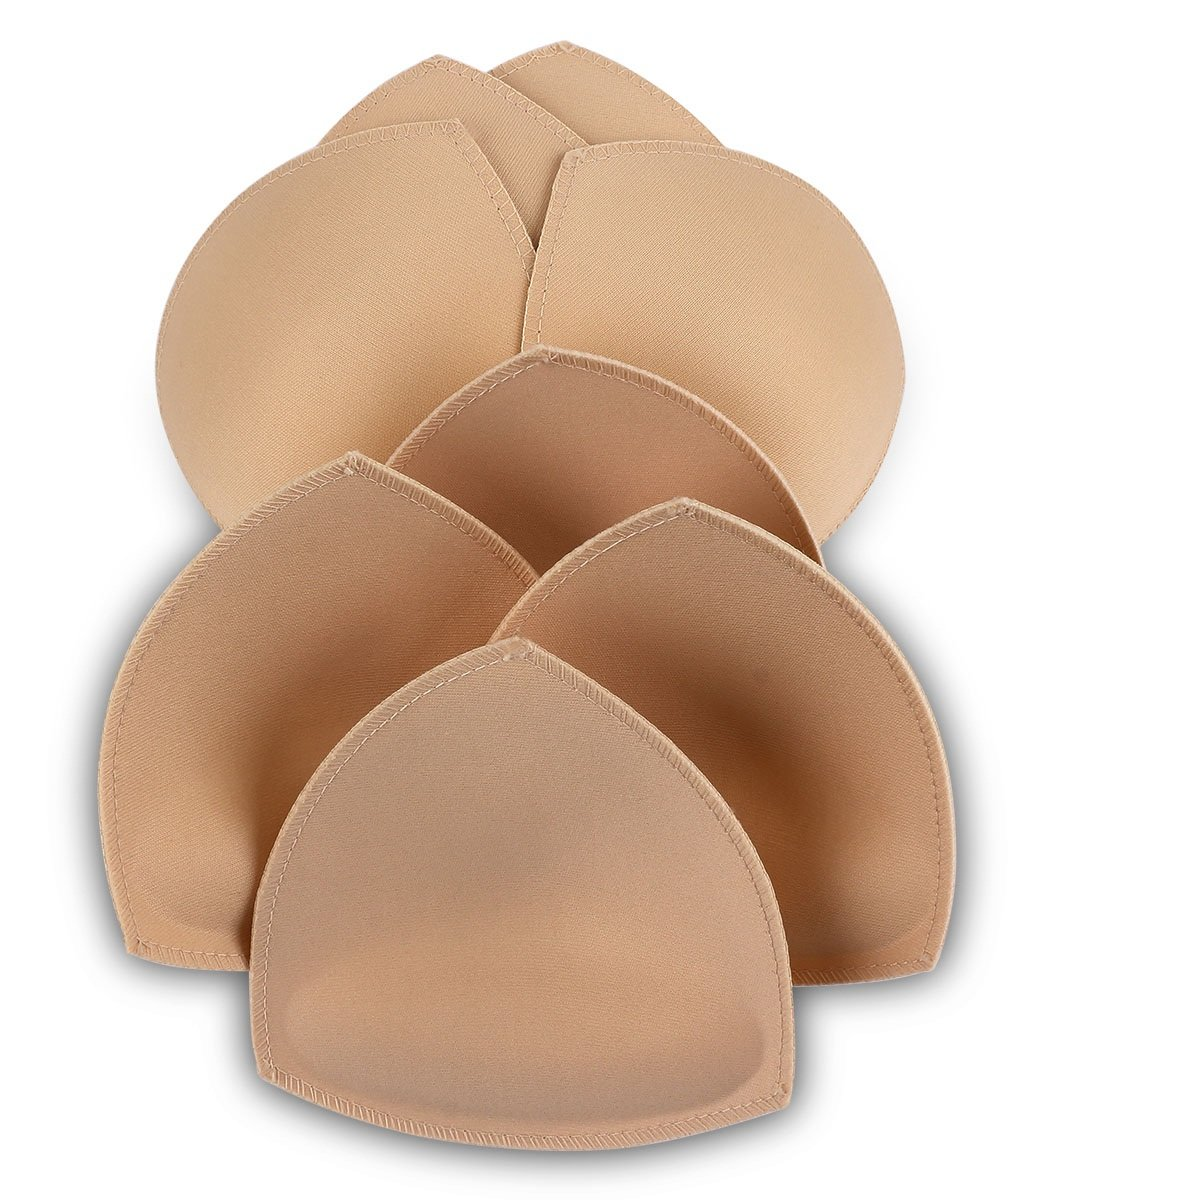 Bra Pad Inserts 4 Pairs,Sermicle Bra Pads Sewn Massaged for Sports Bra A/B or C/D Cup Beige or Black Optional